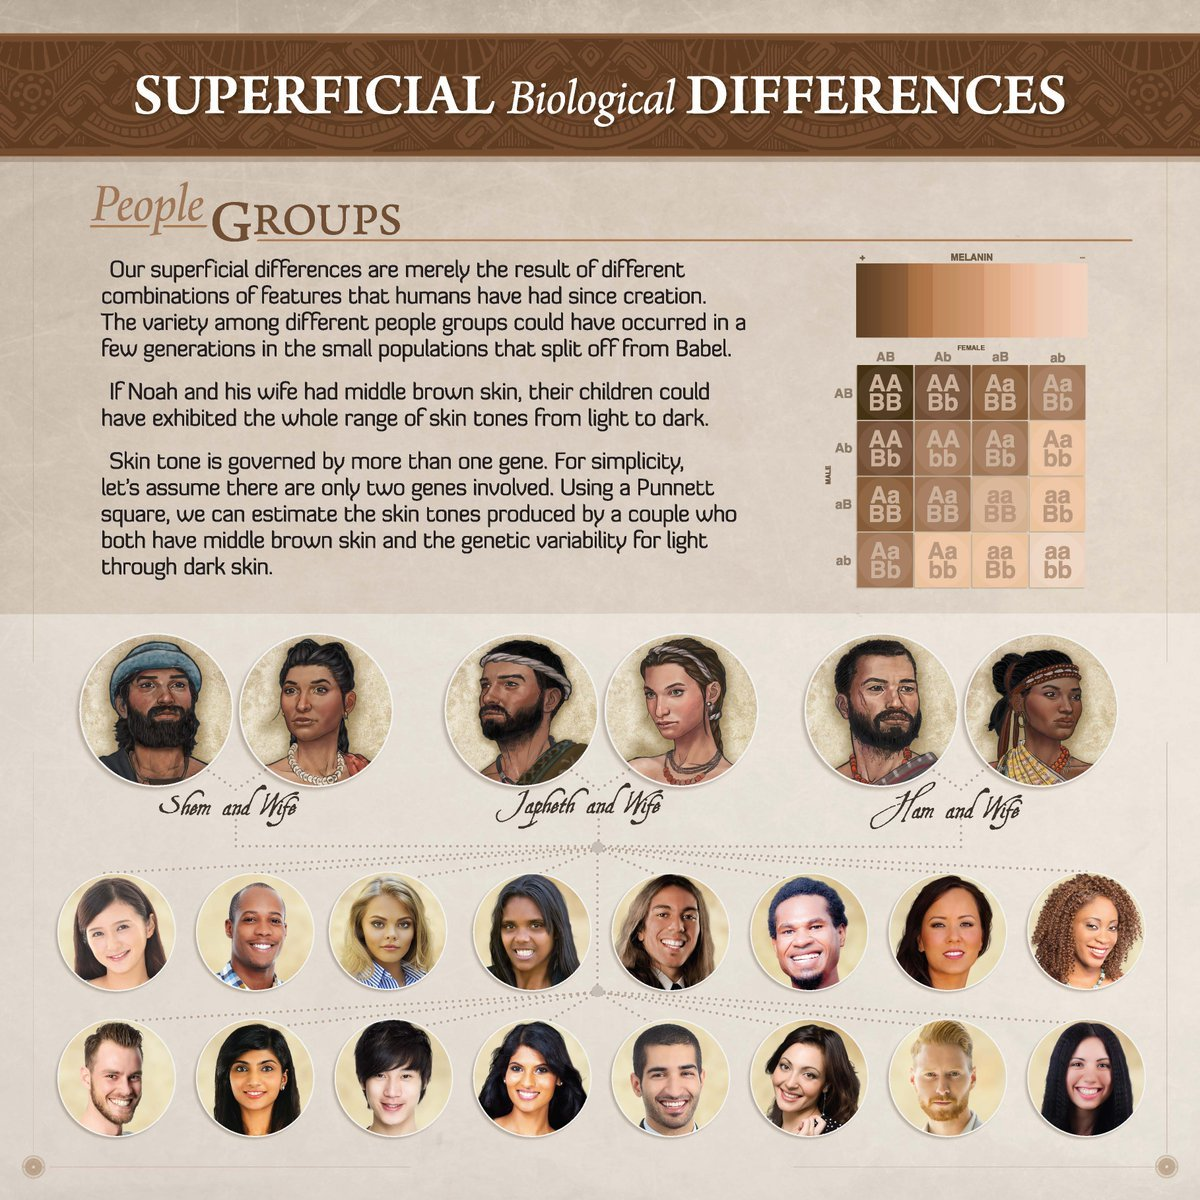 Superficial Differences